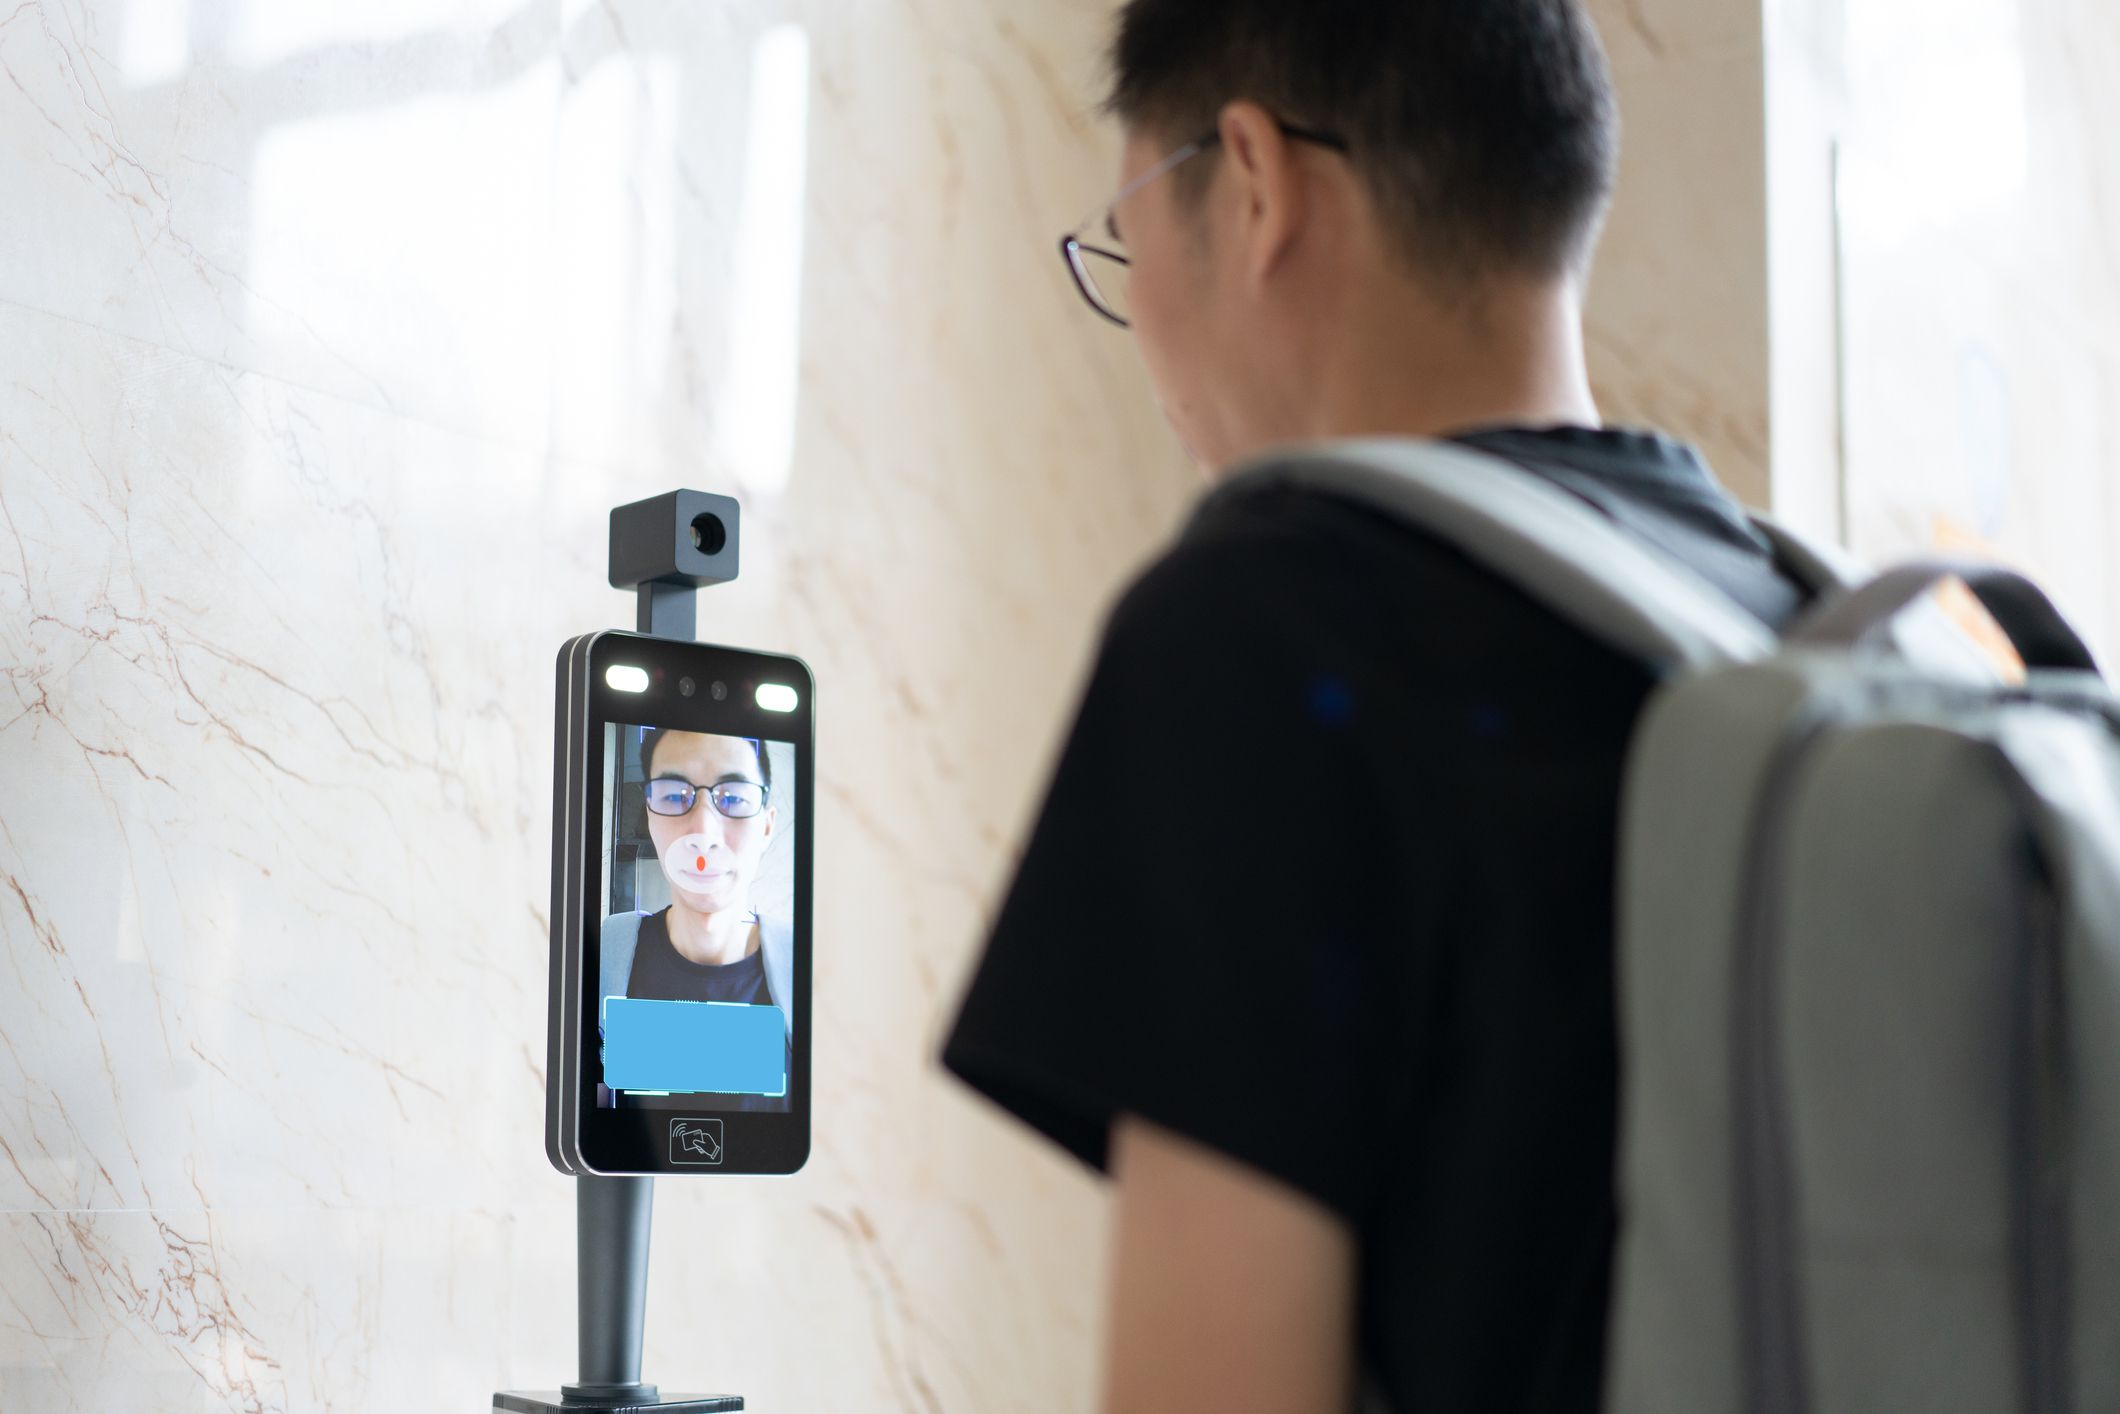 Person standing in front of a facial recognition system